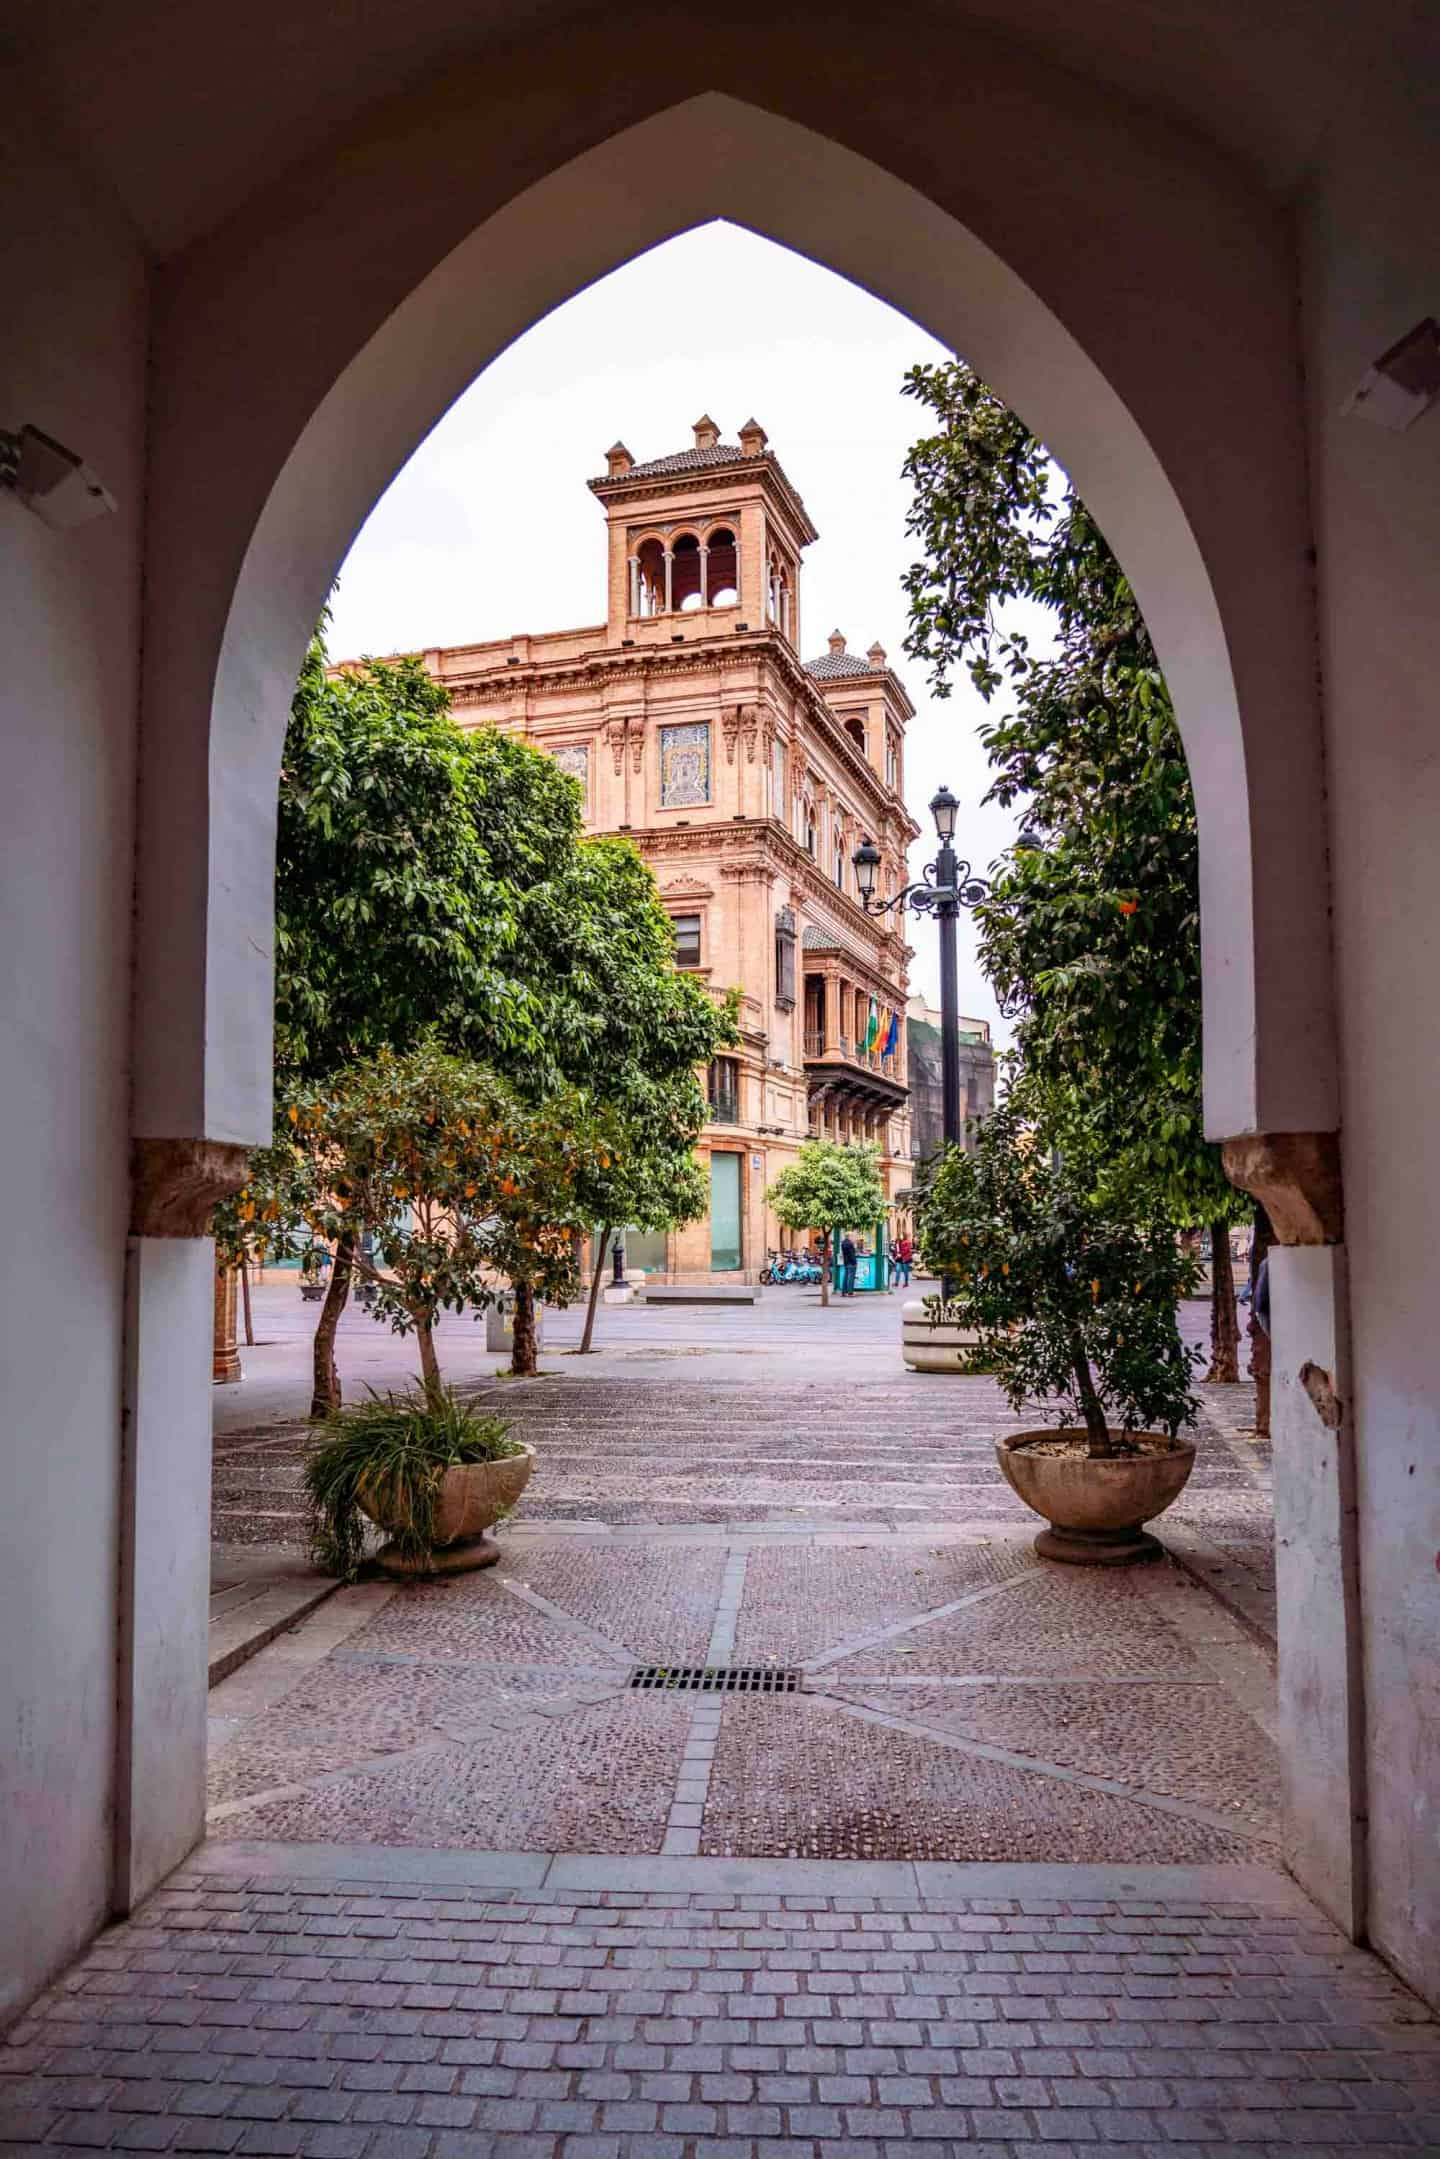 Exploring Barrio Santa Cruz with 3 days in Seville